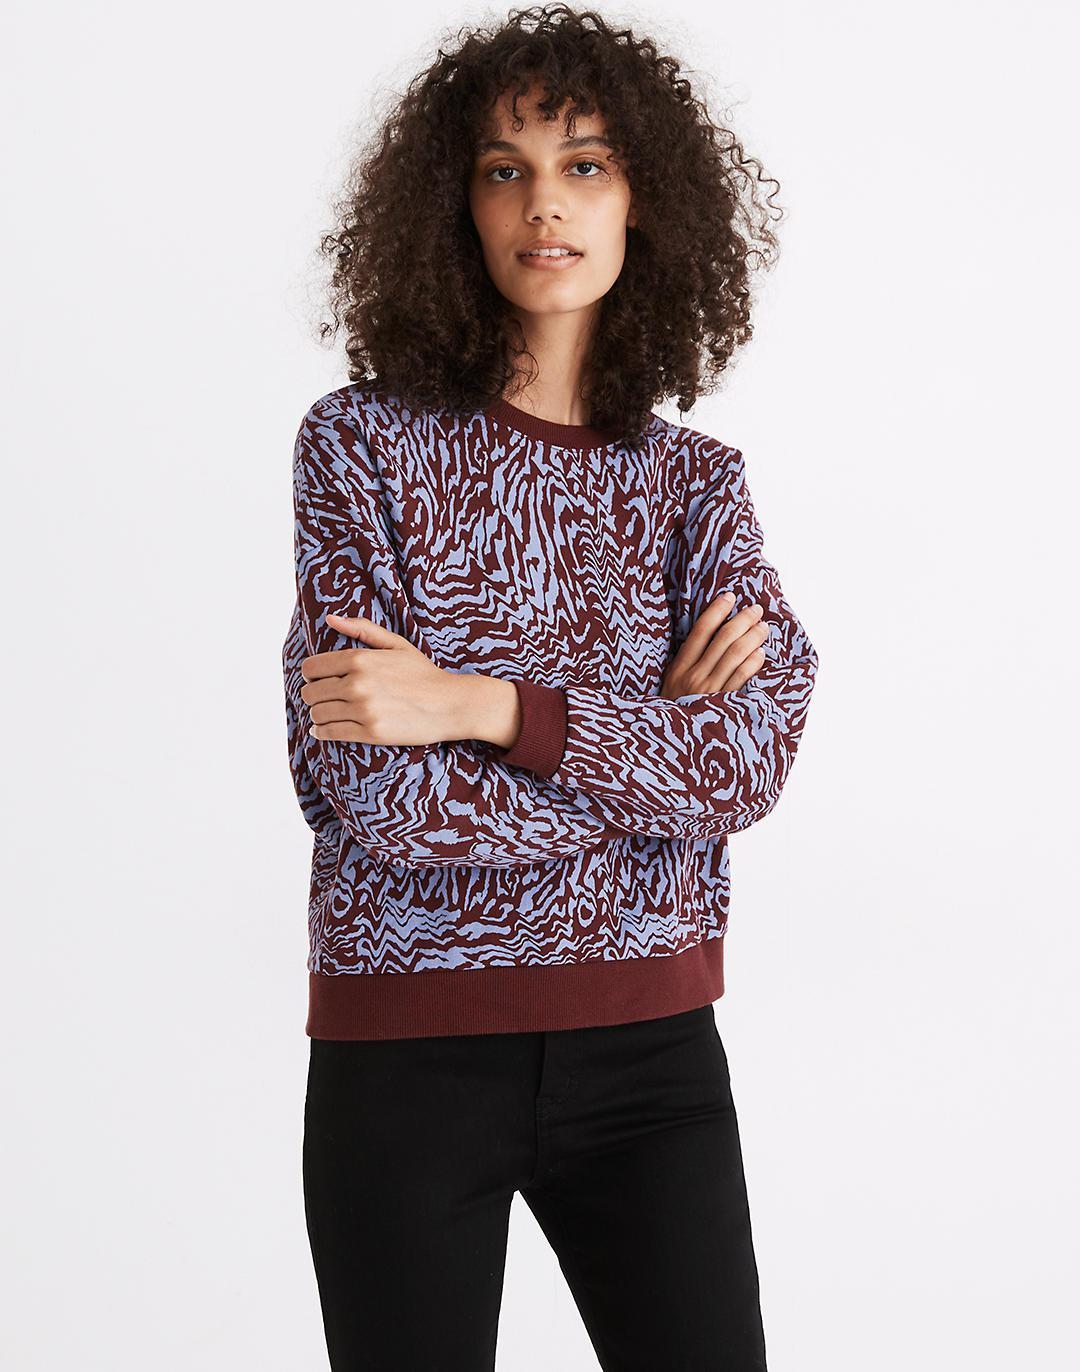 (Re)sourced Cotton Oversized Sweatshirt in Tigerized Print